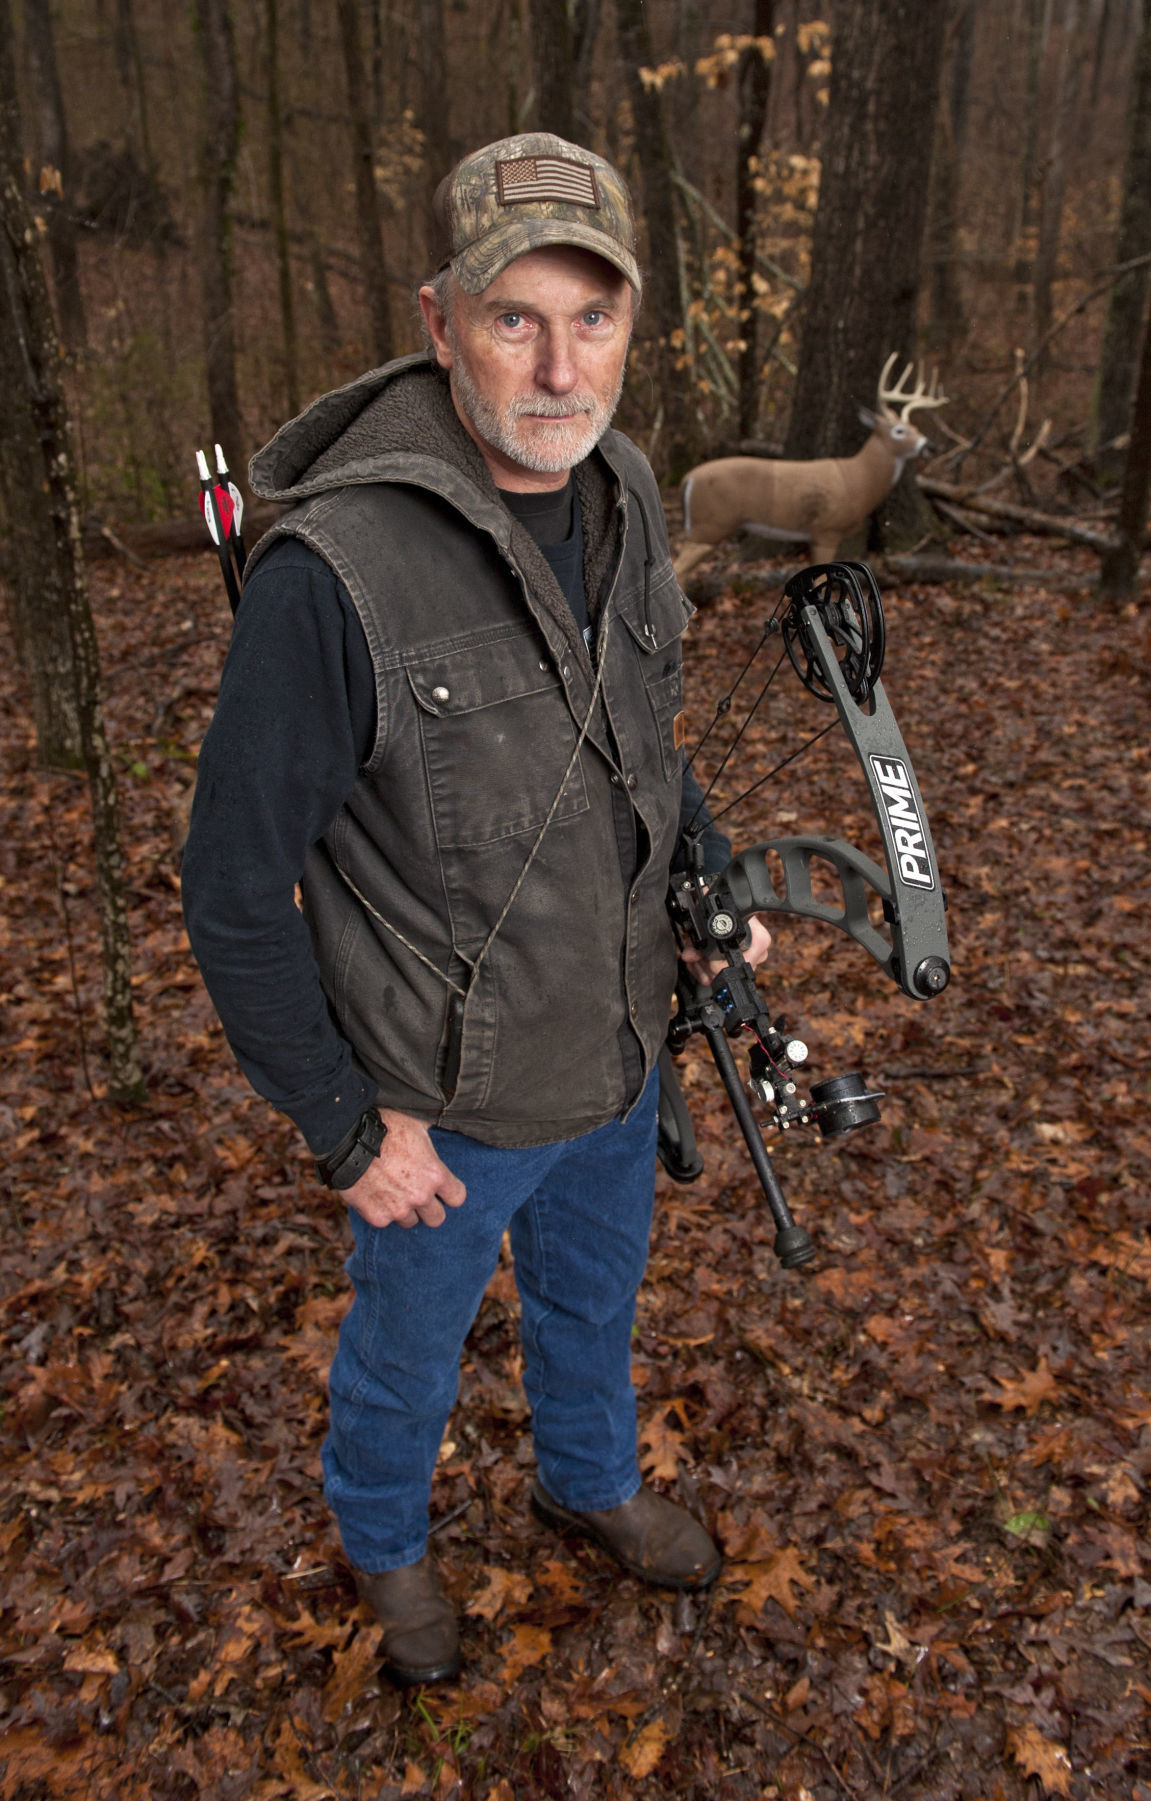 Bow hunters may be allowed to hunt within Winston-Salem